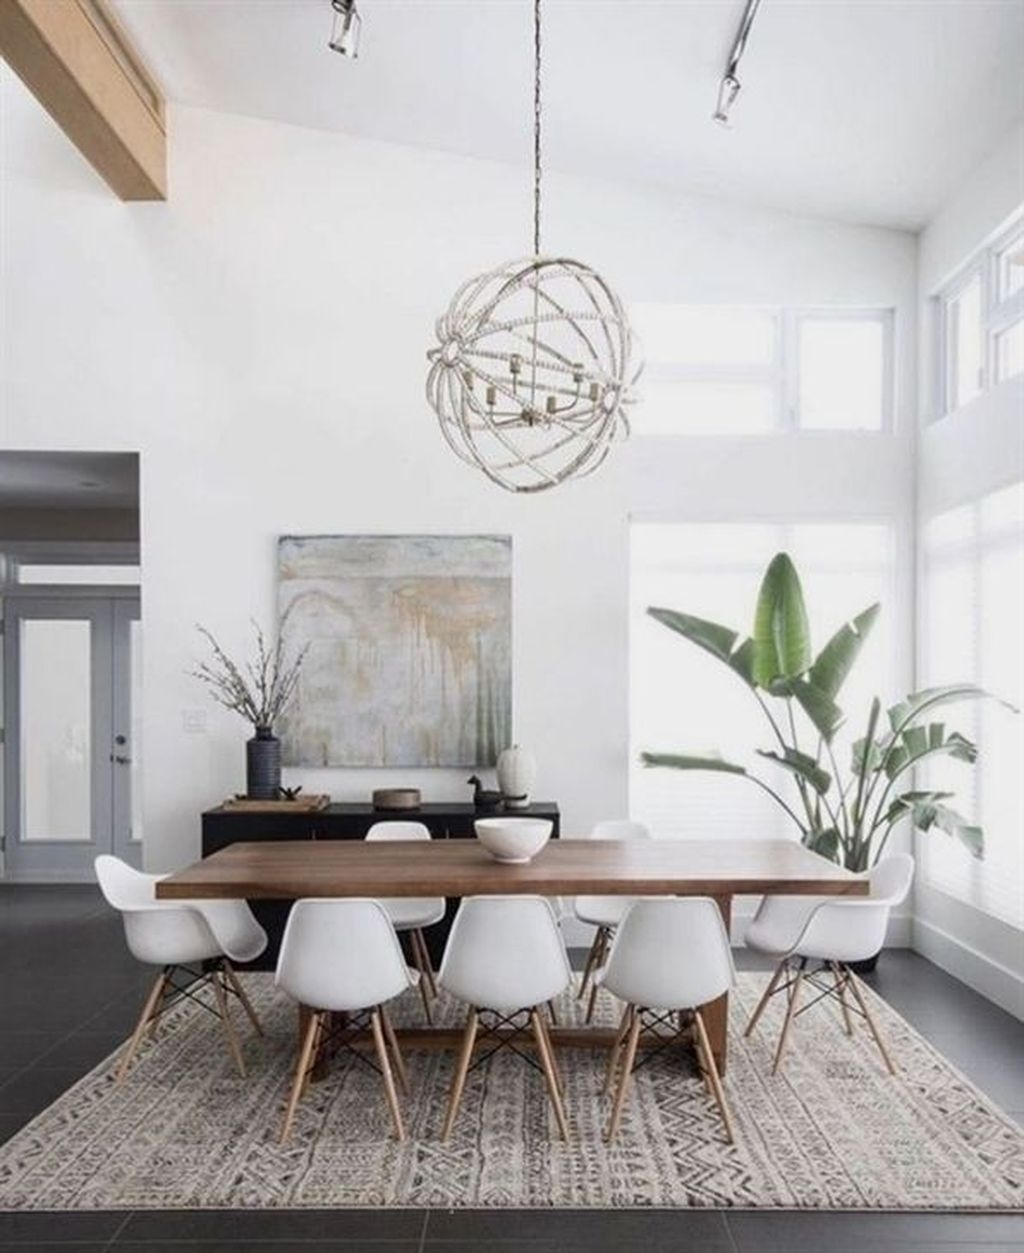 Best Minimalist Dining Room Design Ideas For Dinner With Your Family25